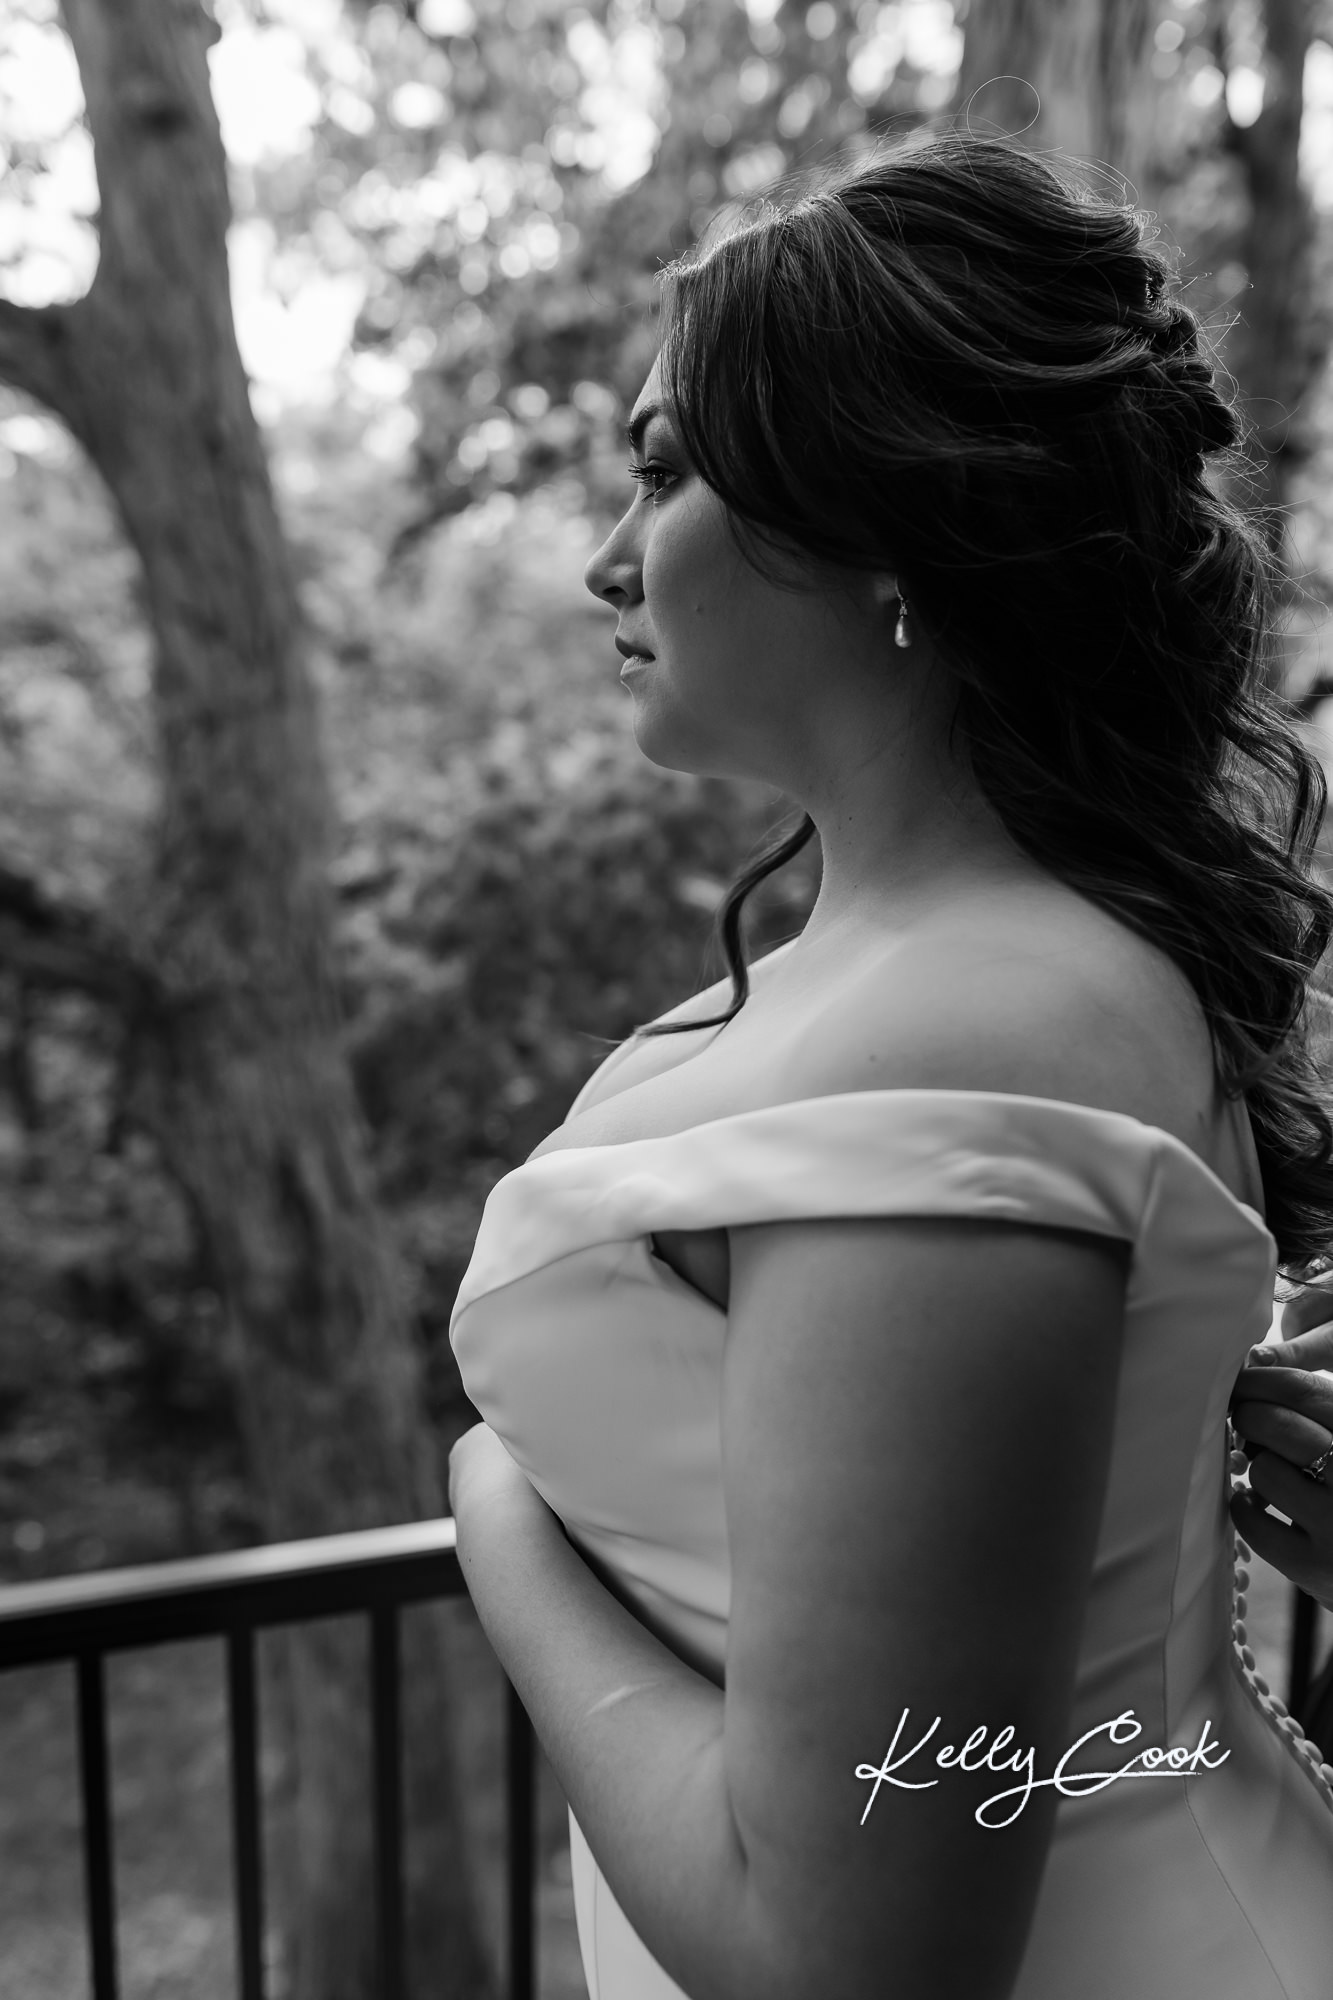 Black and white photo of bride getting her wedding dress buttoned